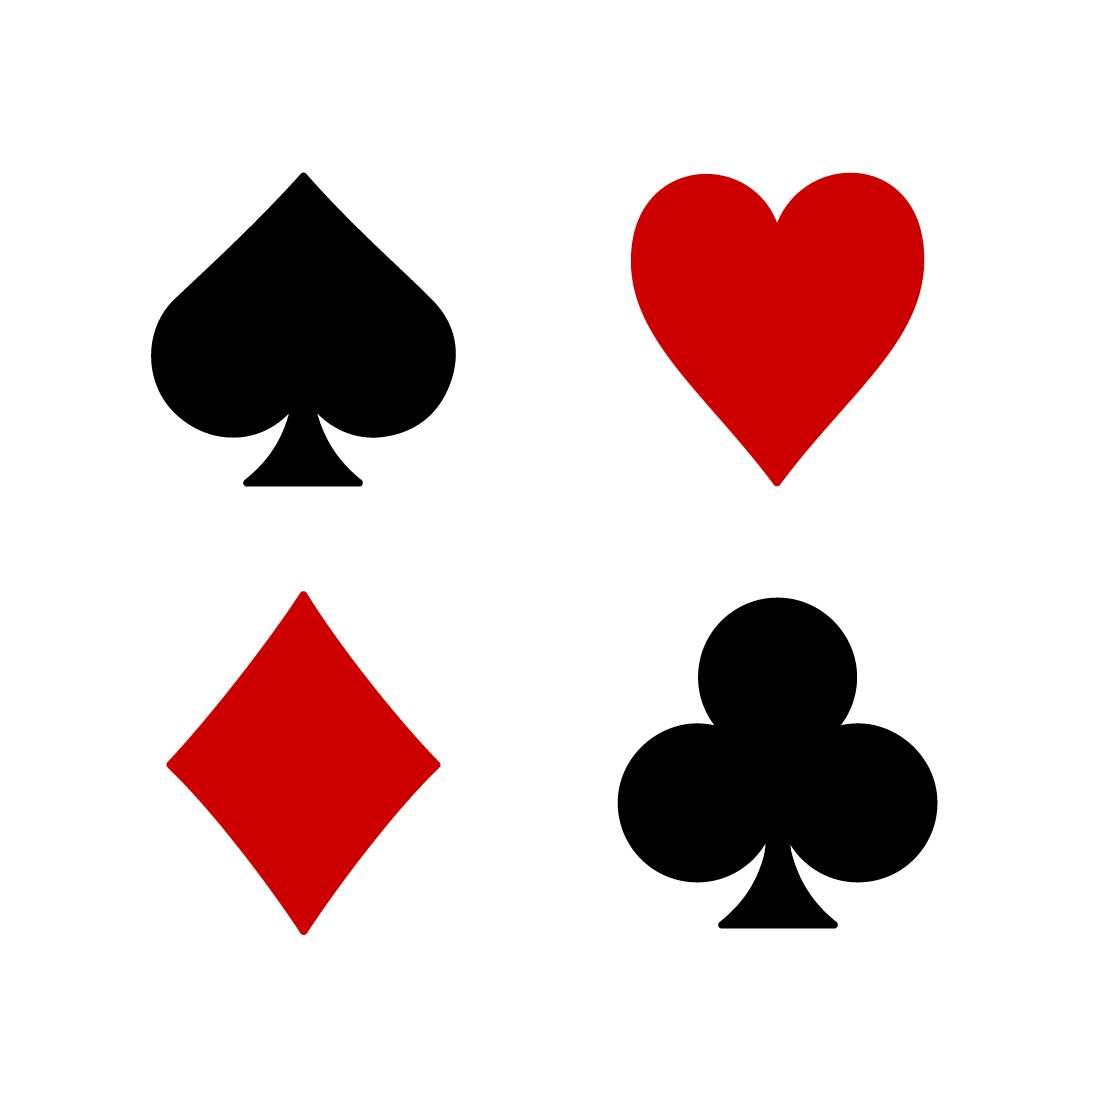 Playing Card Suits Clipart #1-Playing Card Suits Clipart #1-13